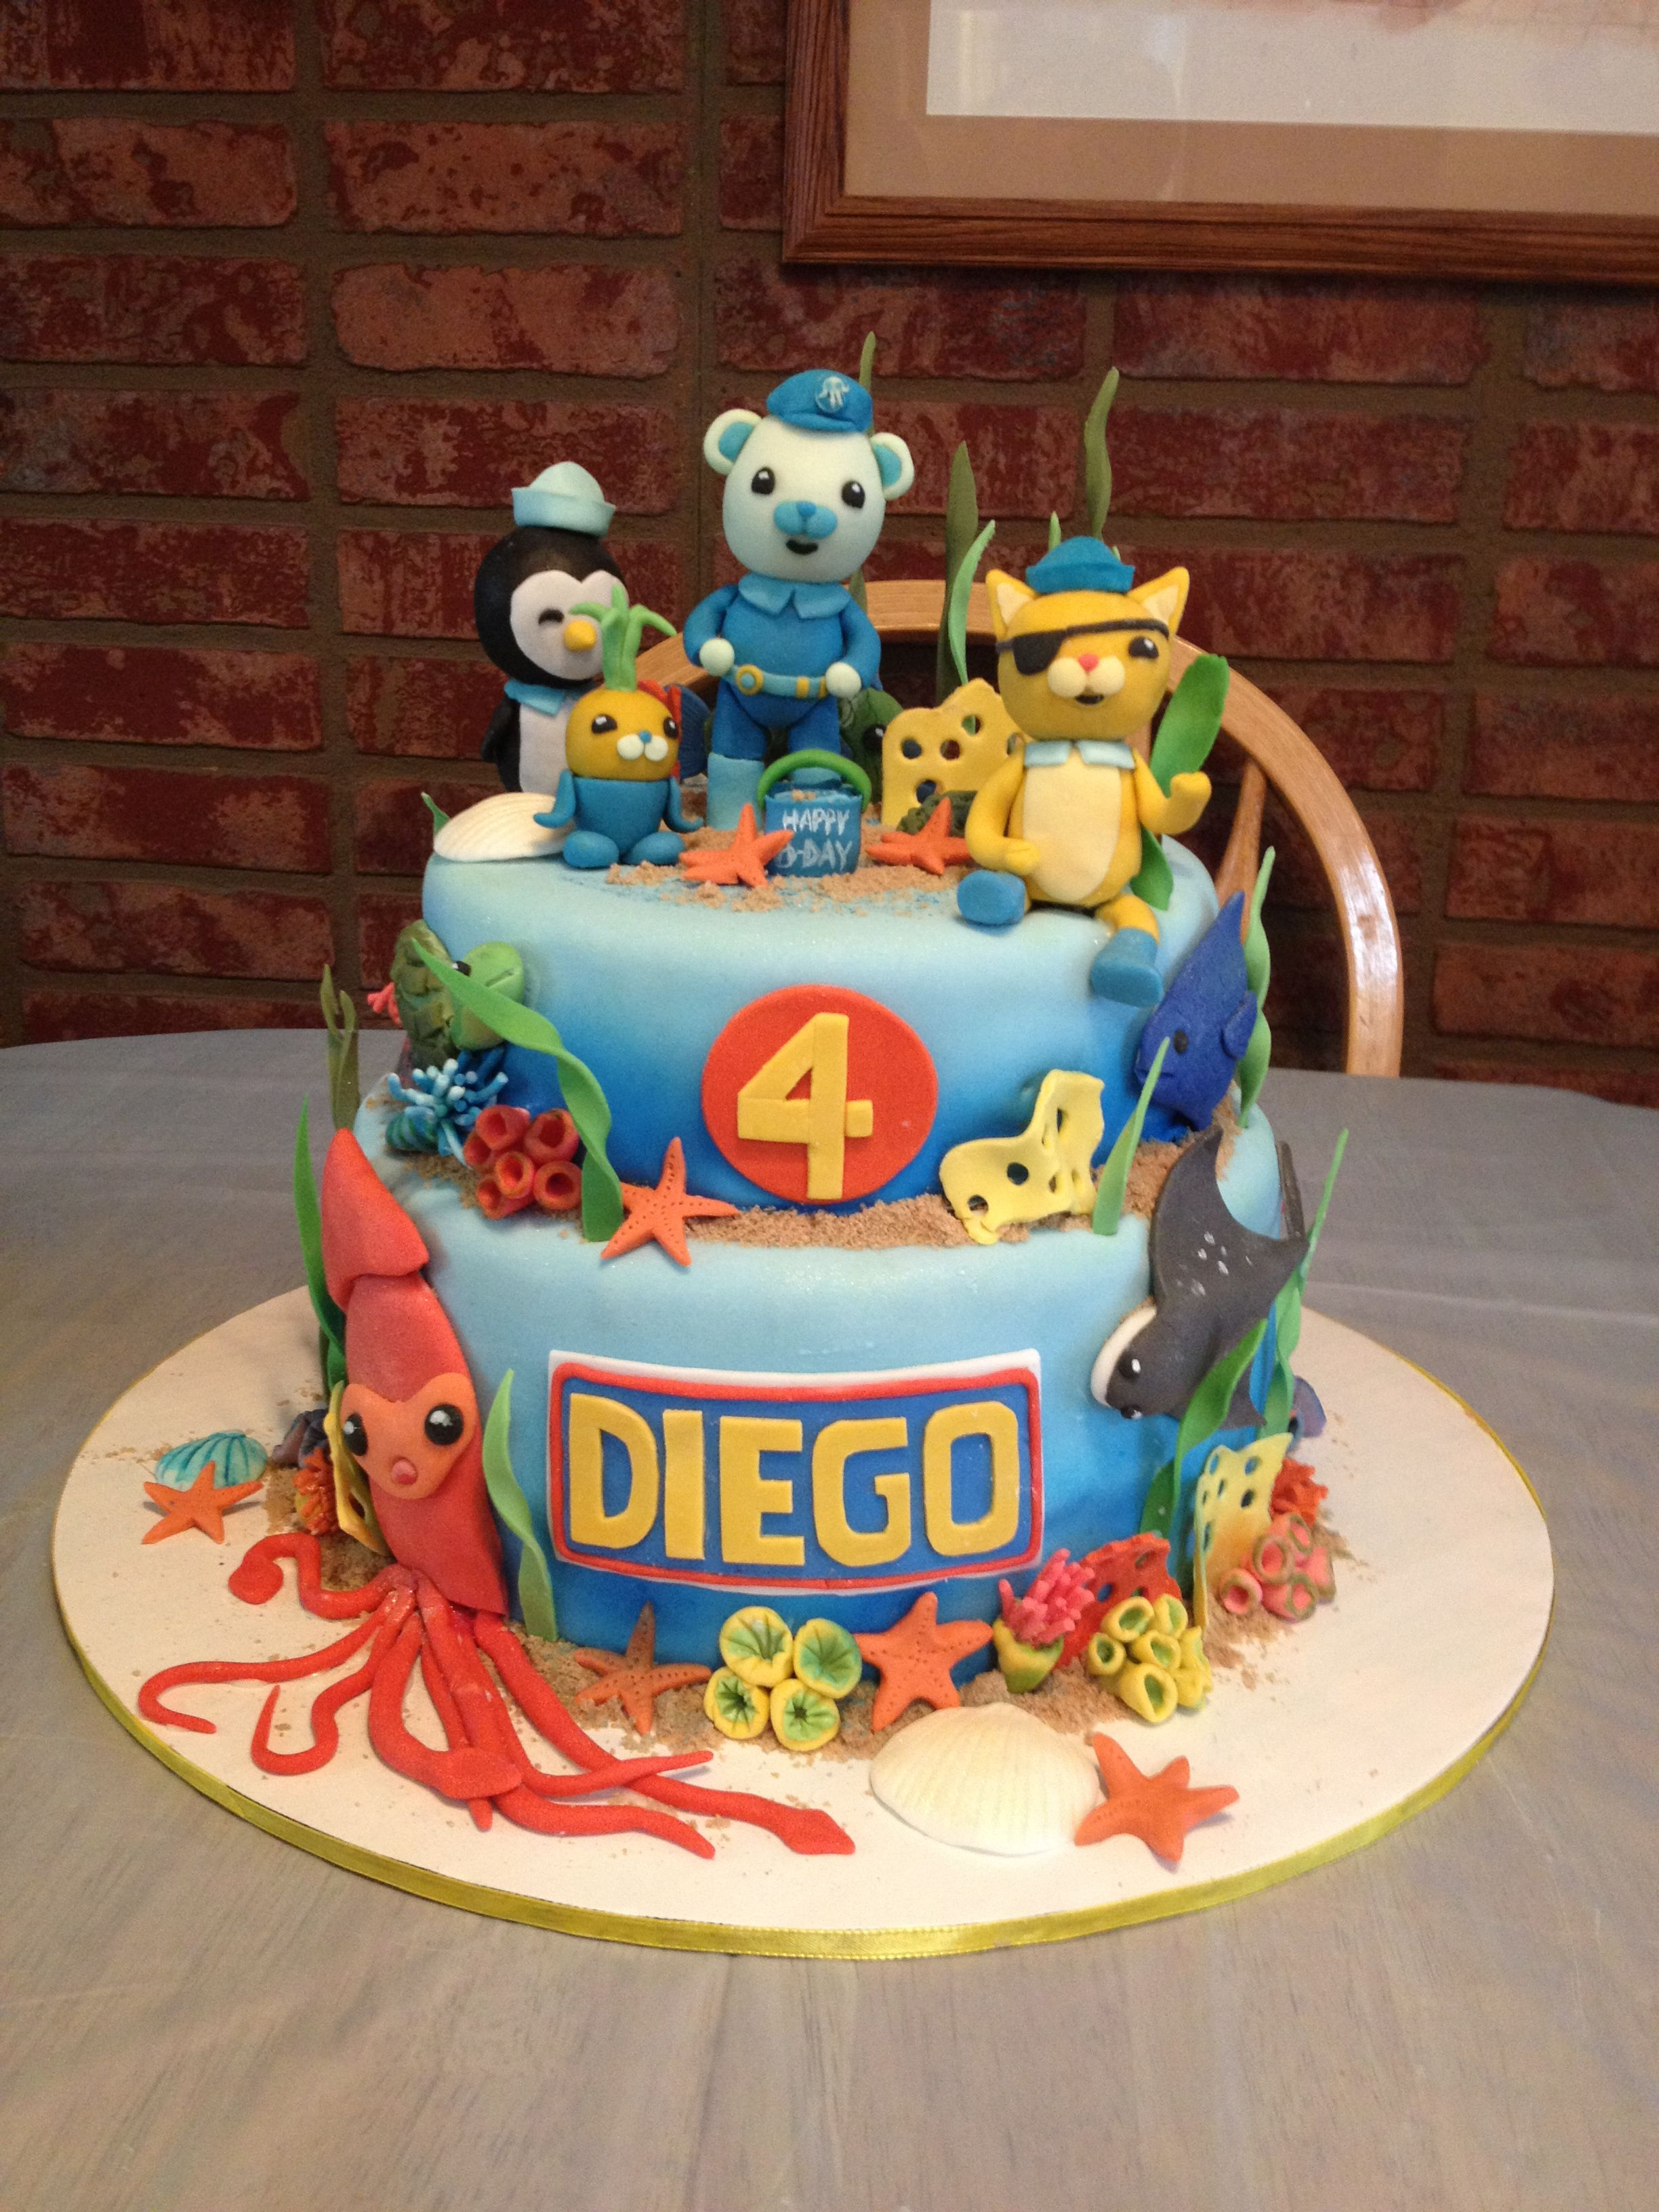 Octonauts Birthday Cake With Disney Characters Made Out Of Fondant